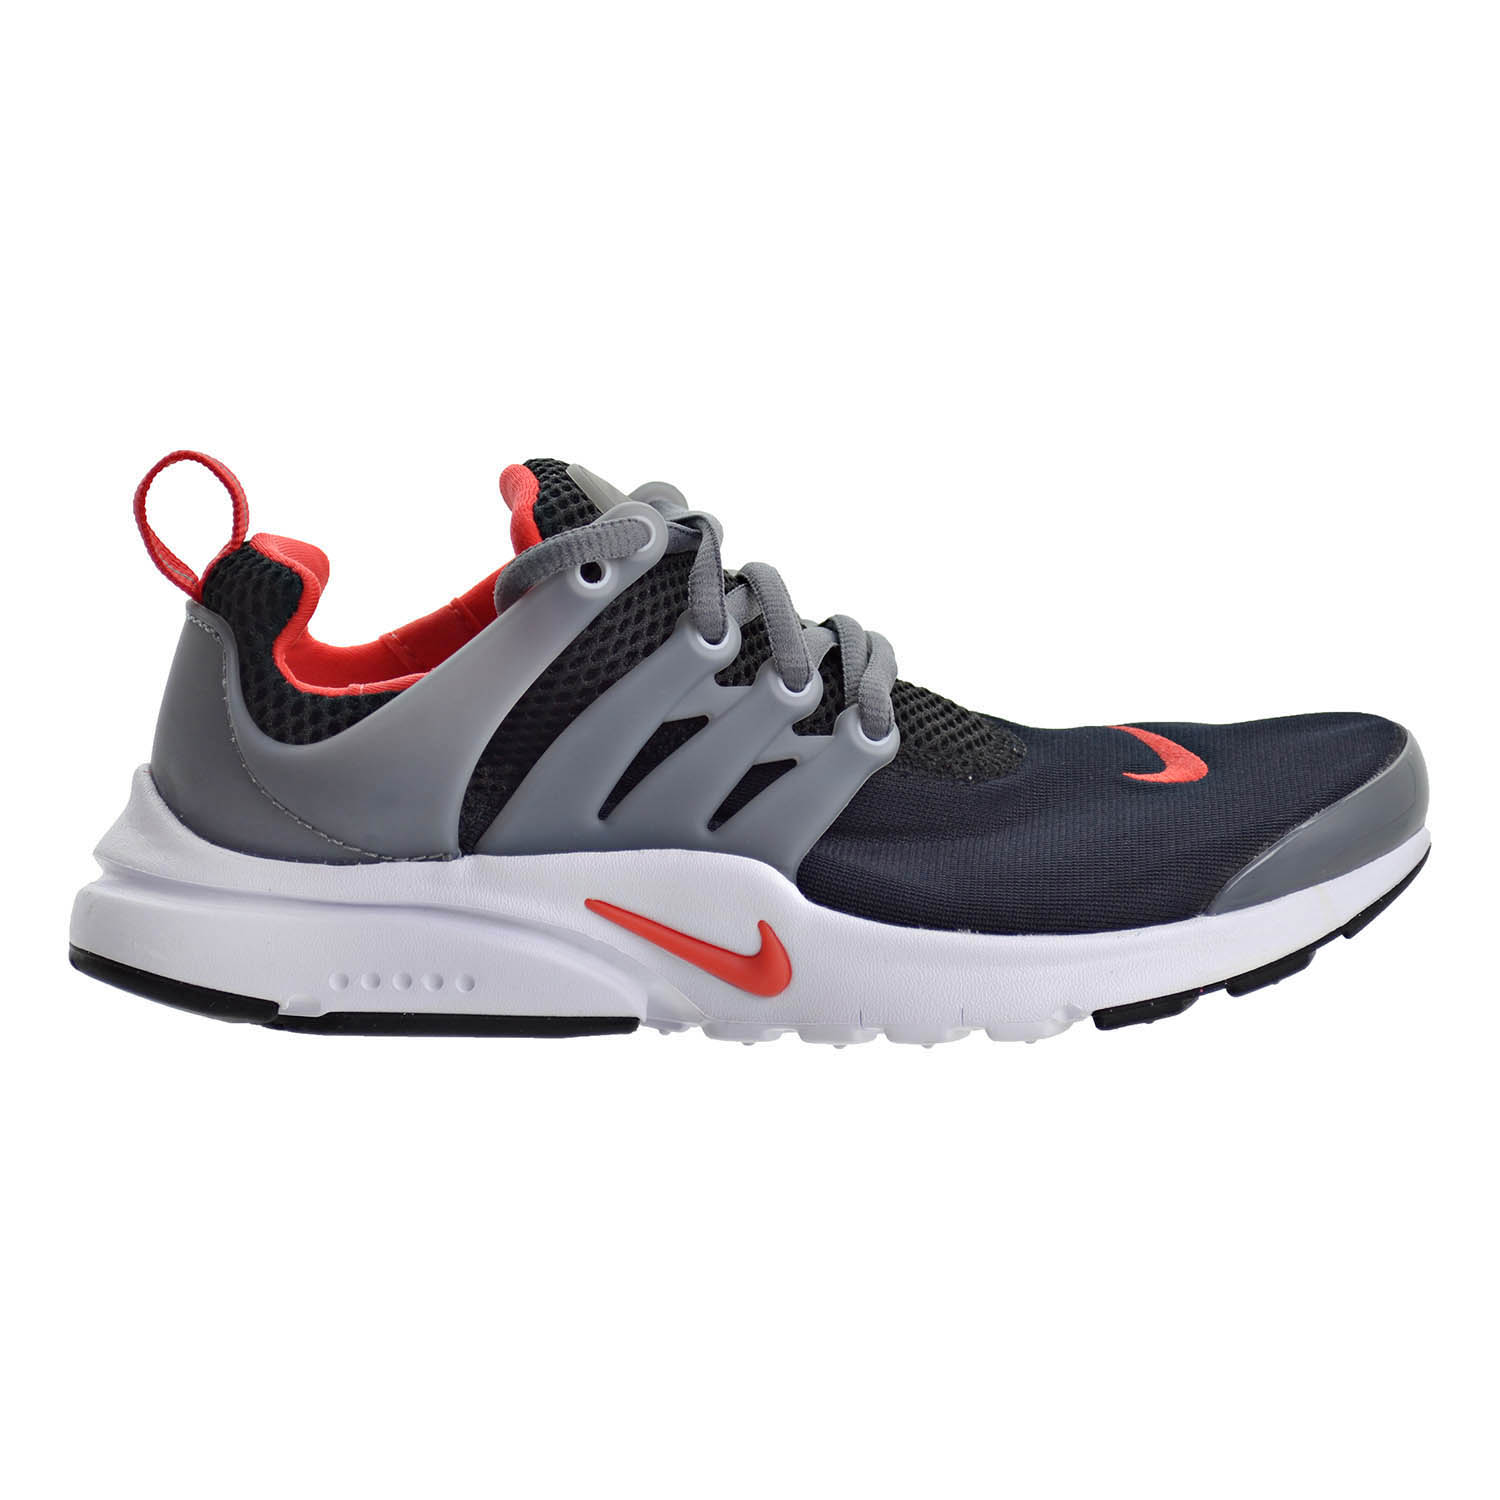 8ef64f860e17 Details about Nike Presto (GS) Big Kids Running Shoes Black Max Orange Cool  Grey 833875-011